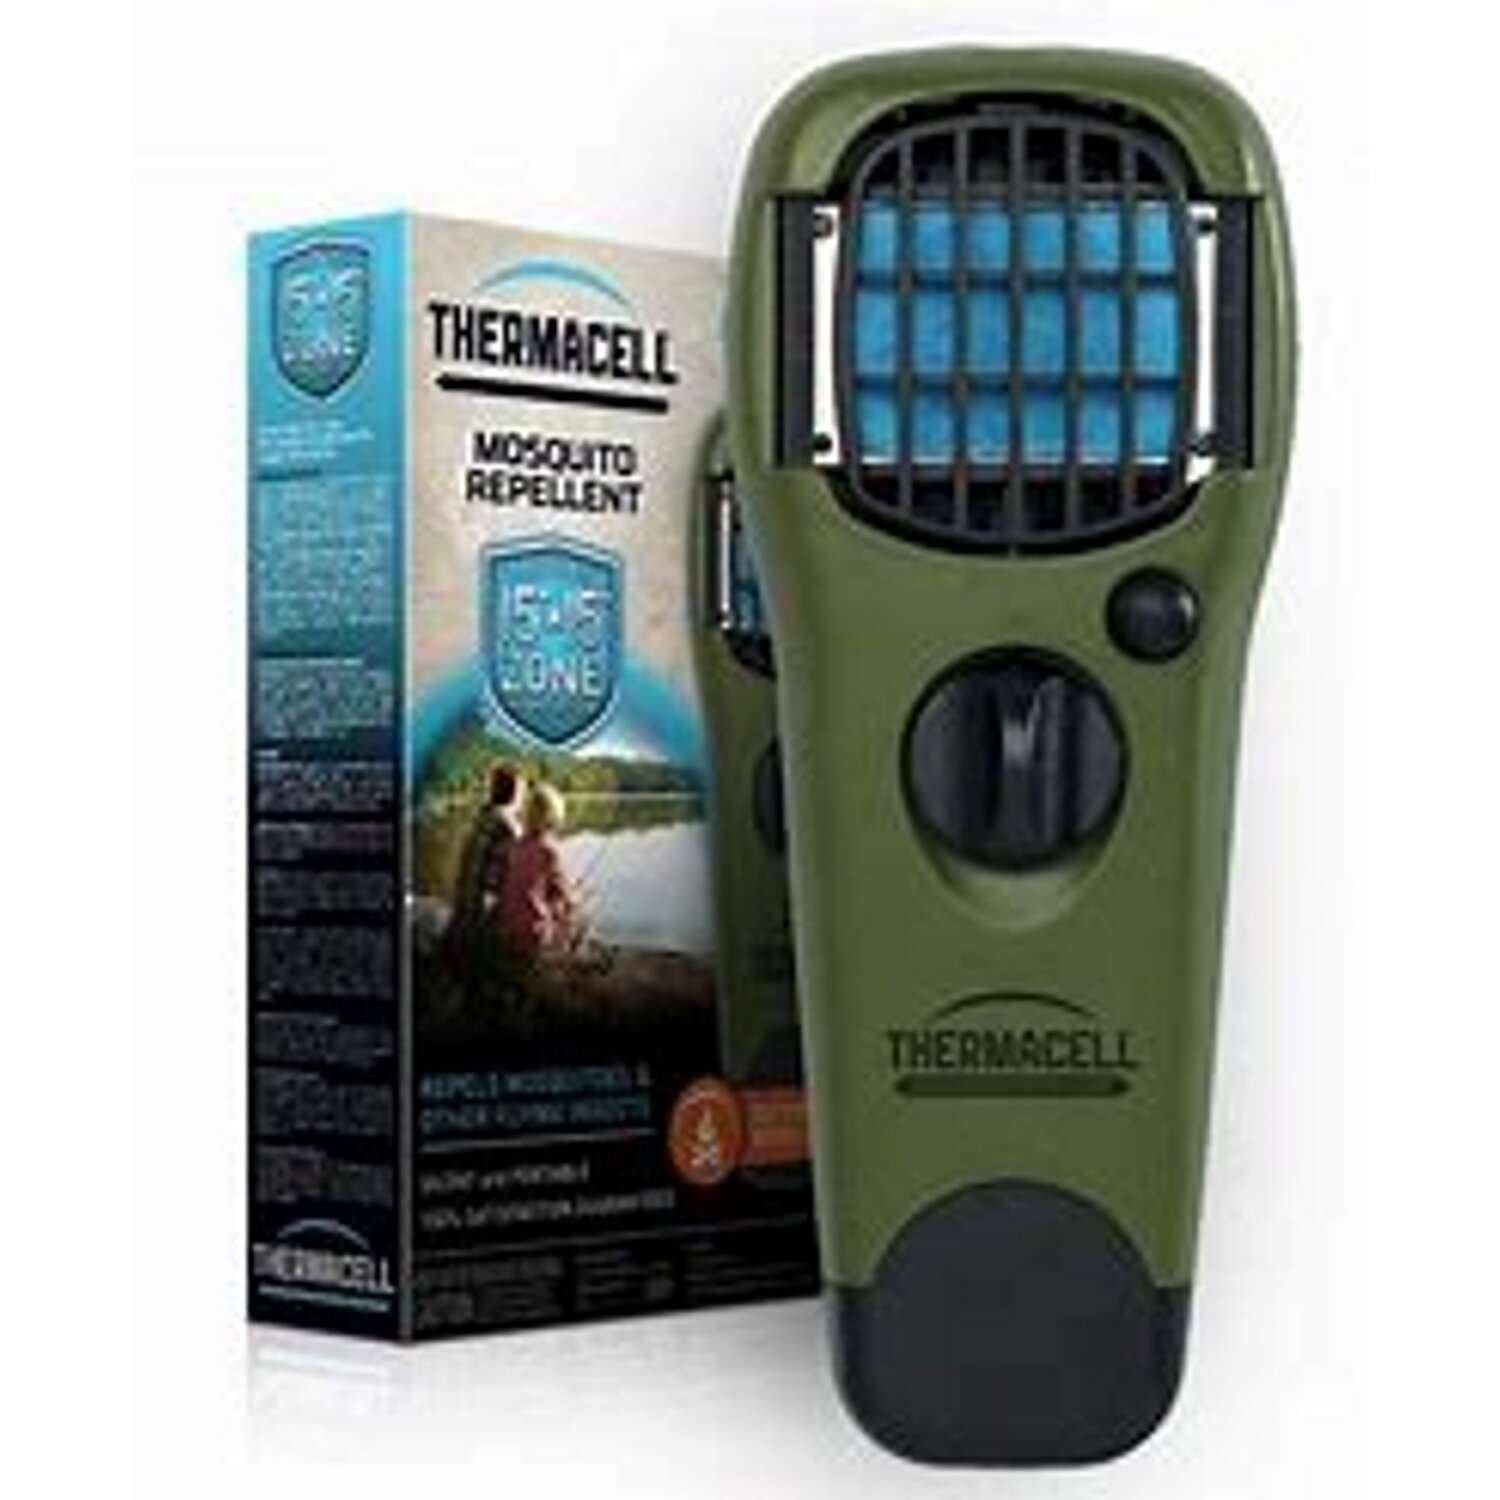 Thermacell  Insect Repellent Device  For Mosquitoes/Other Flying Insects 0.8 oz.